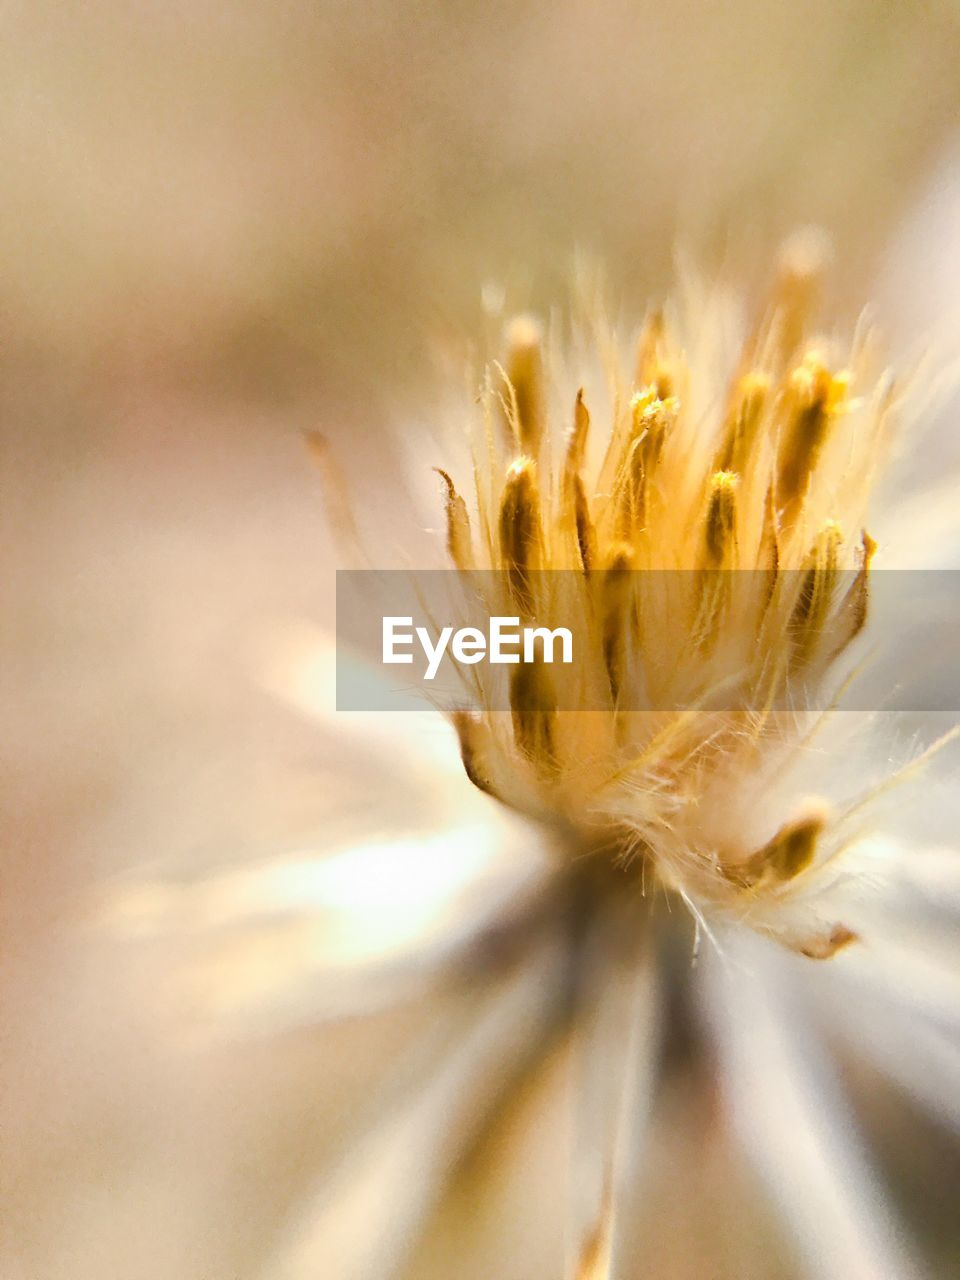 flower, fragility, flower head, growth, freshness, petal, nature, close-up, beauty in nature, selective focus, softness, stamen, botany, plant, macro, springtime, pollen, blossom, no people, seed, day, uncultivated, outdoors, soft focus